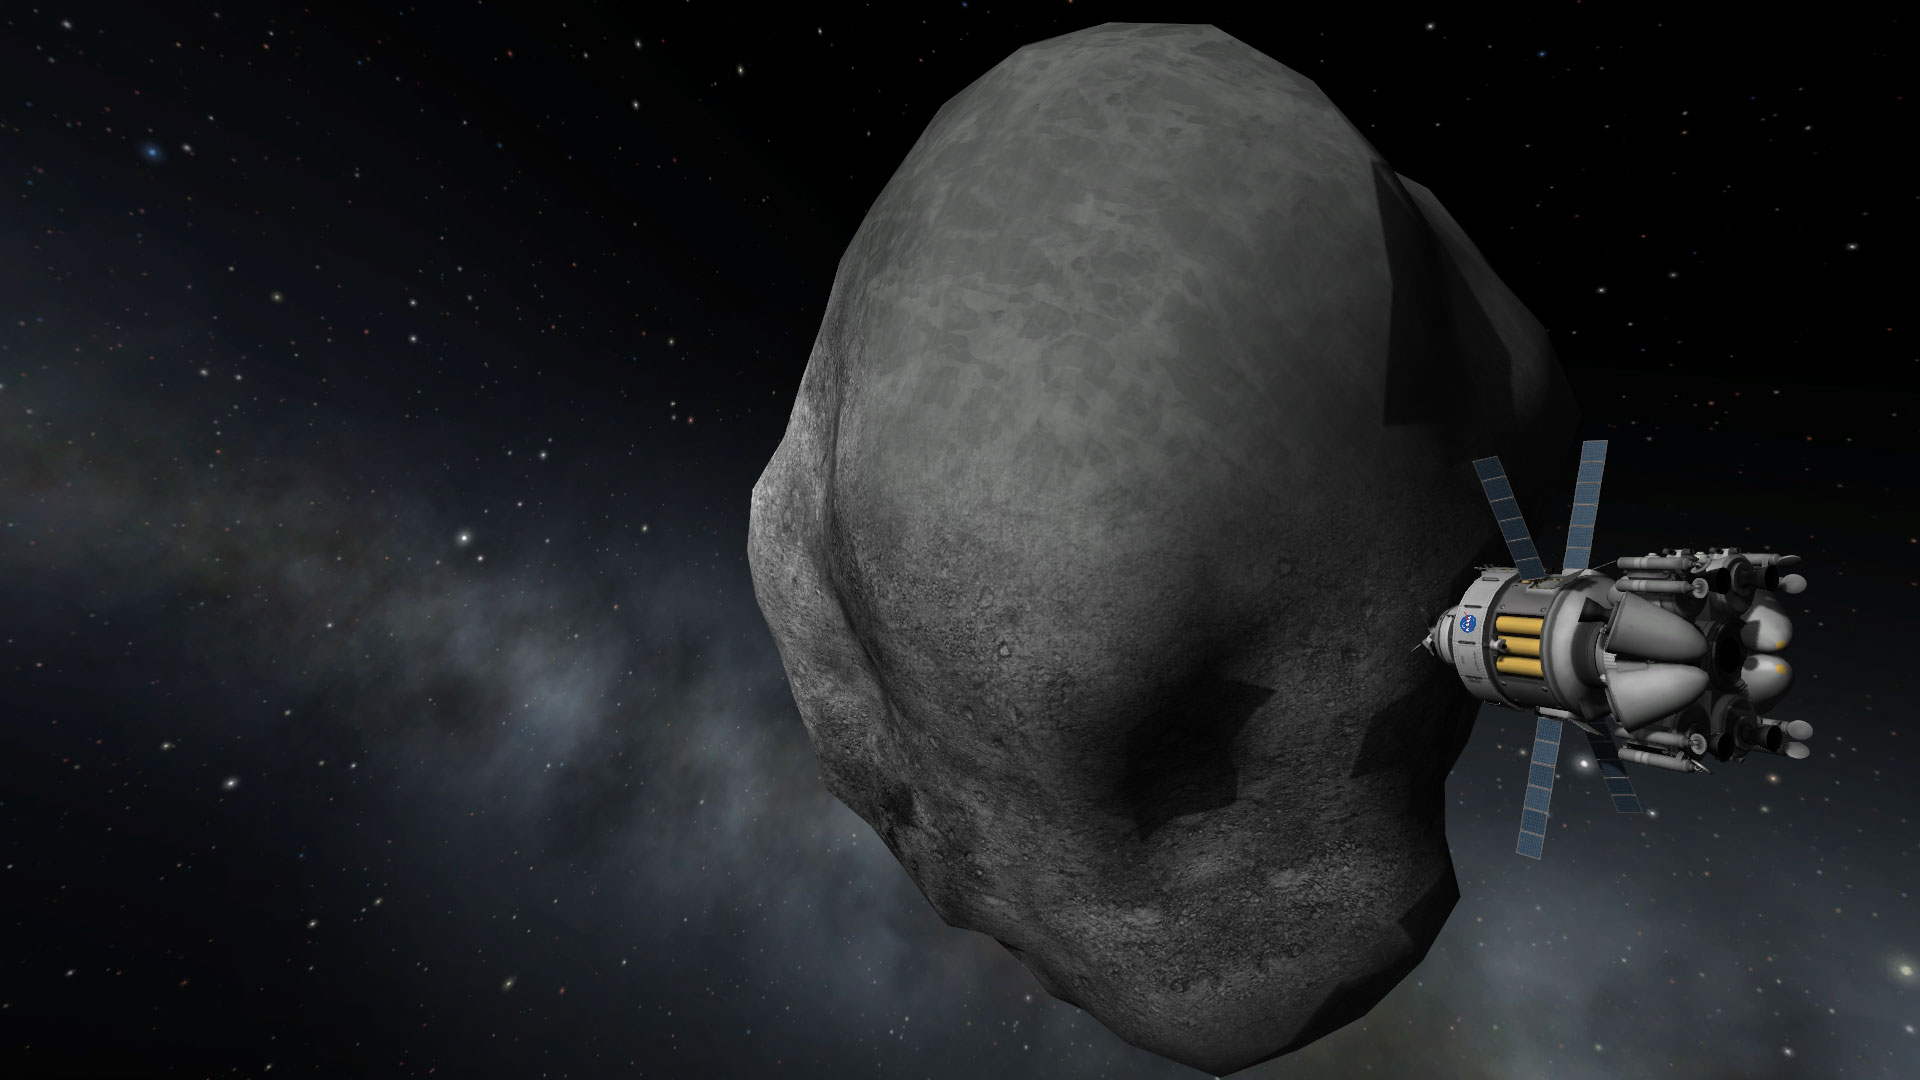 Squad, the creators of KSP, and NASA partnered to bring the Asteroid Redirect Mission into the game. Credit: Squad, Monkey Squad S.A de C.V.